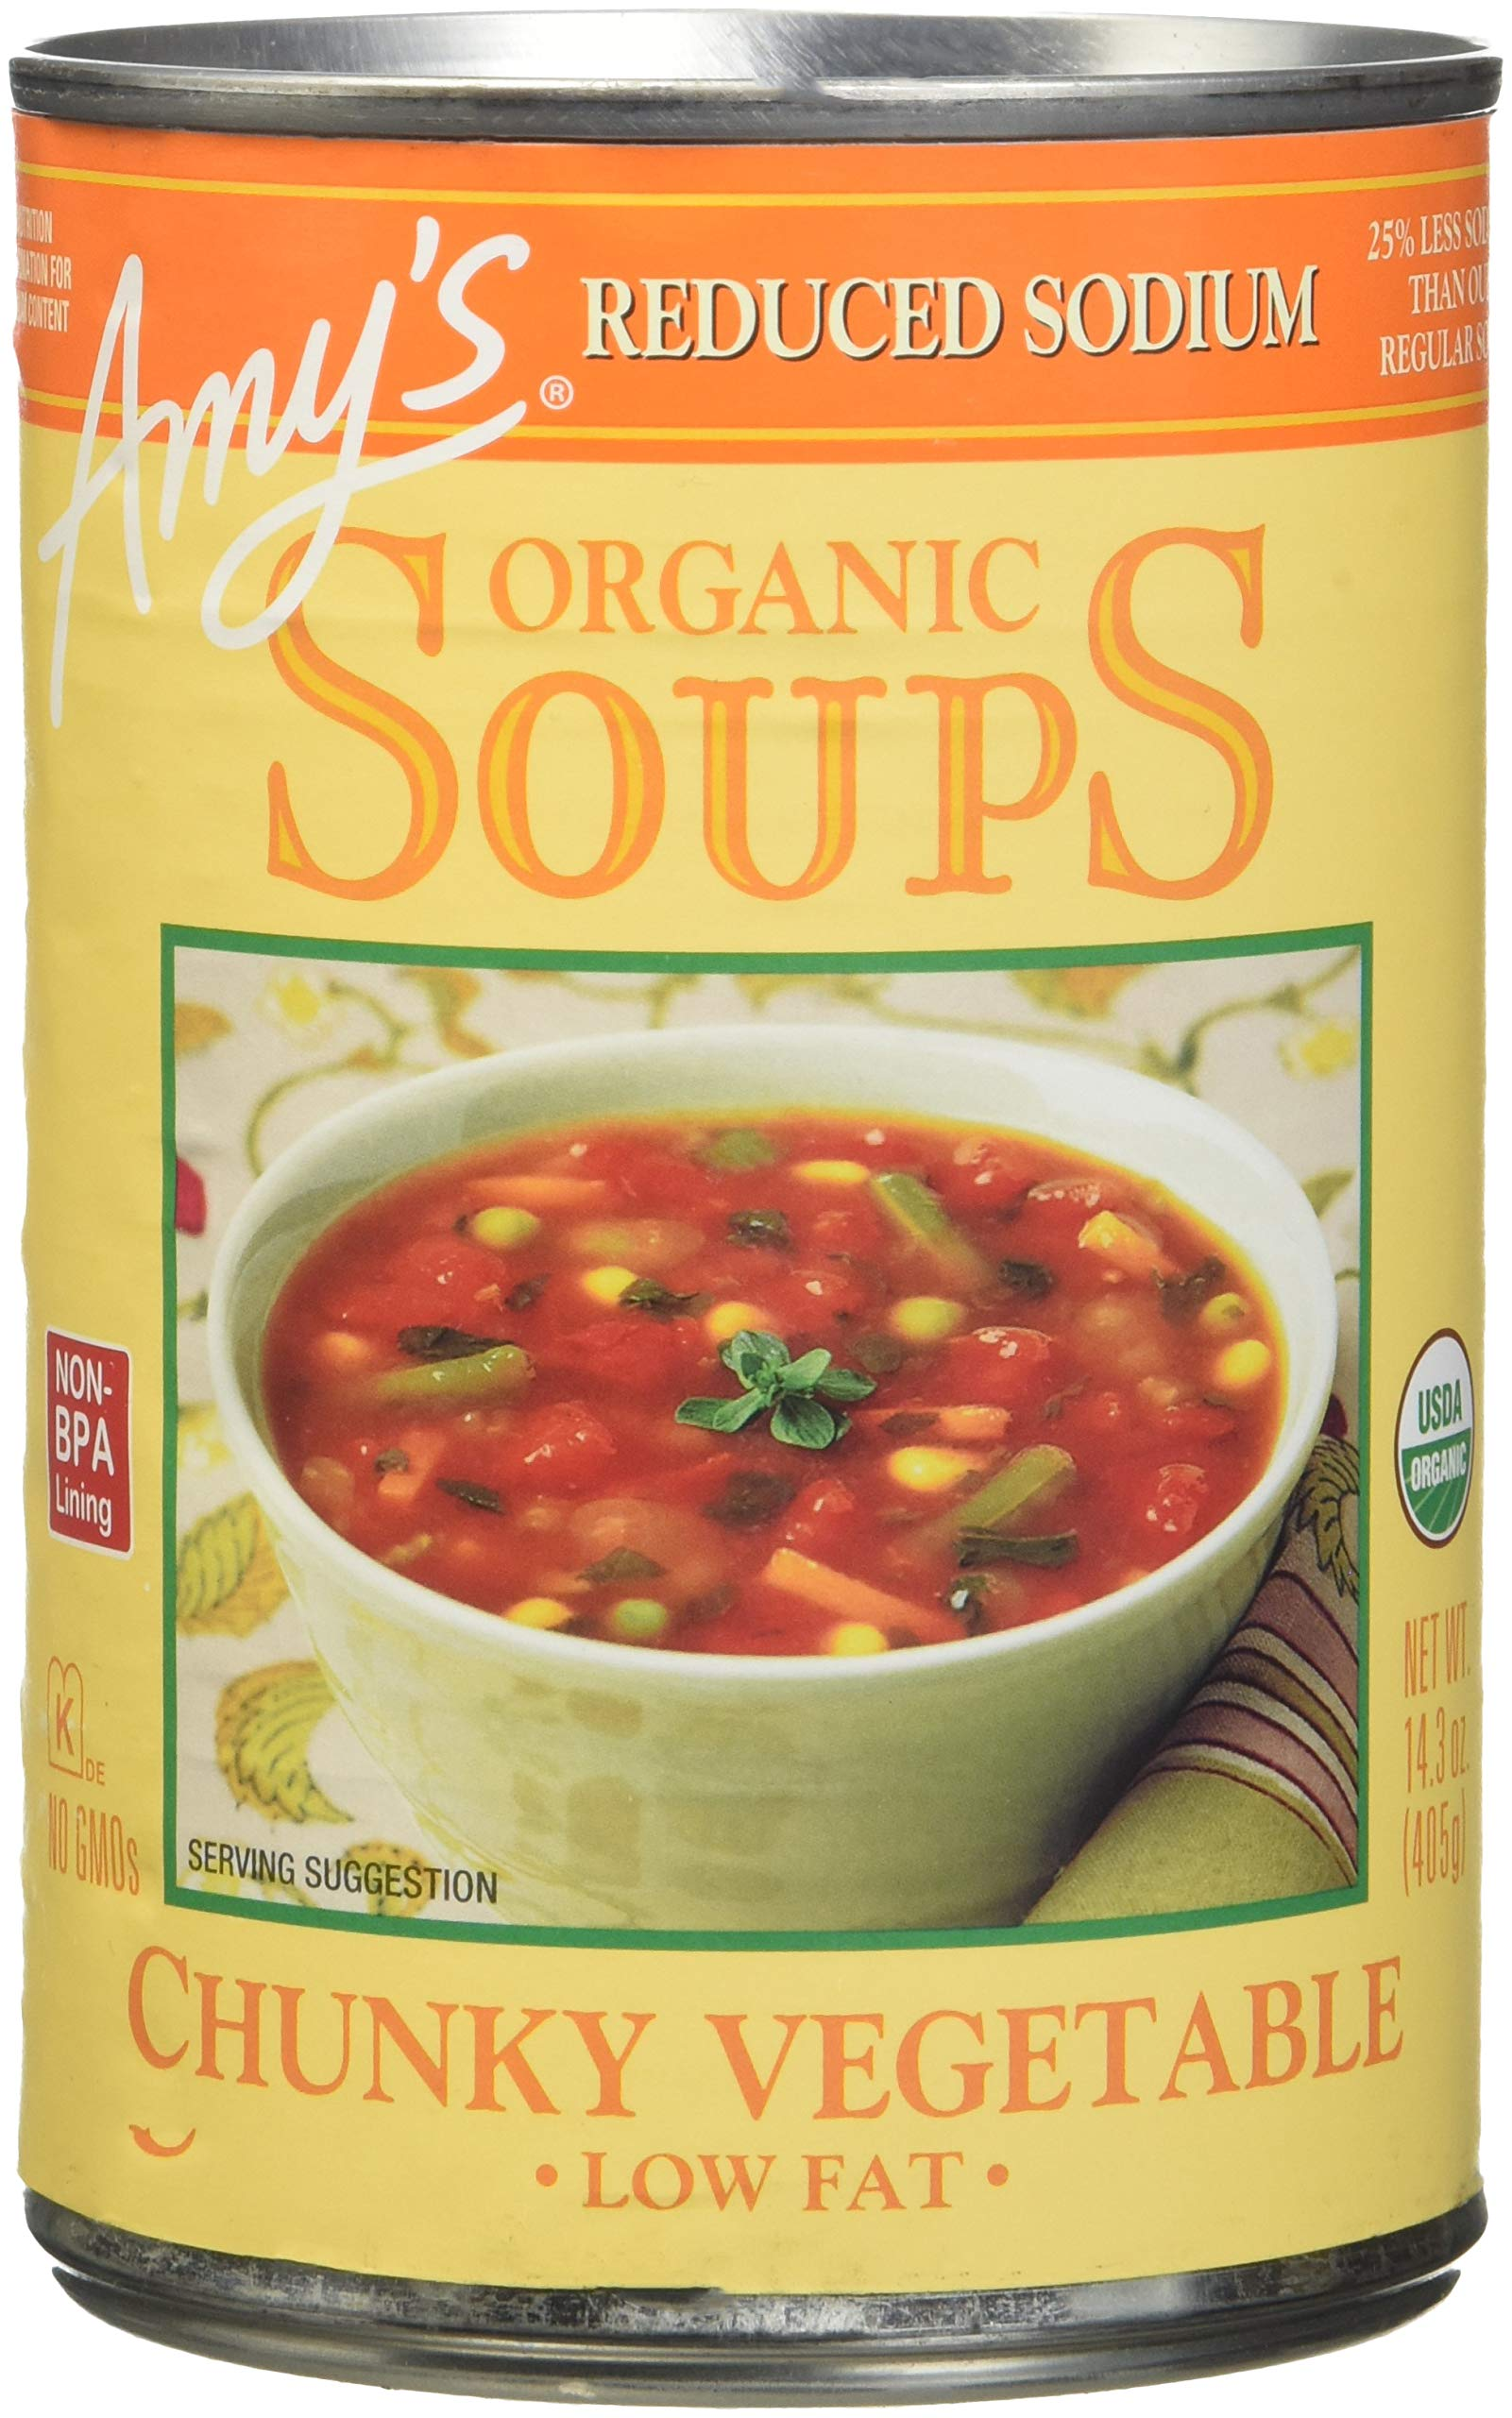 Amy's Soups, Reduced Sodium Chunky Vegetable, 14.3 Ounce (Pack of 12) by Amy's